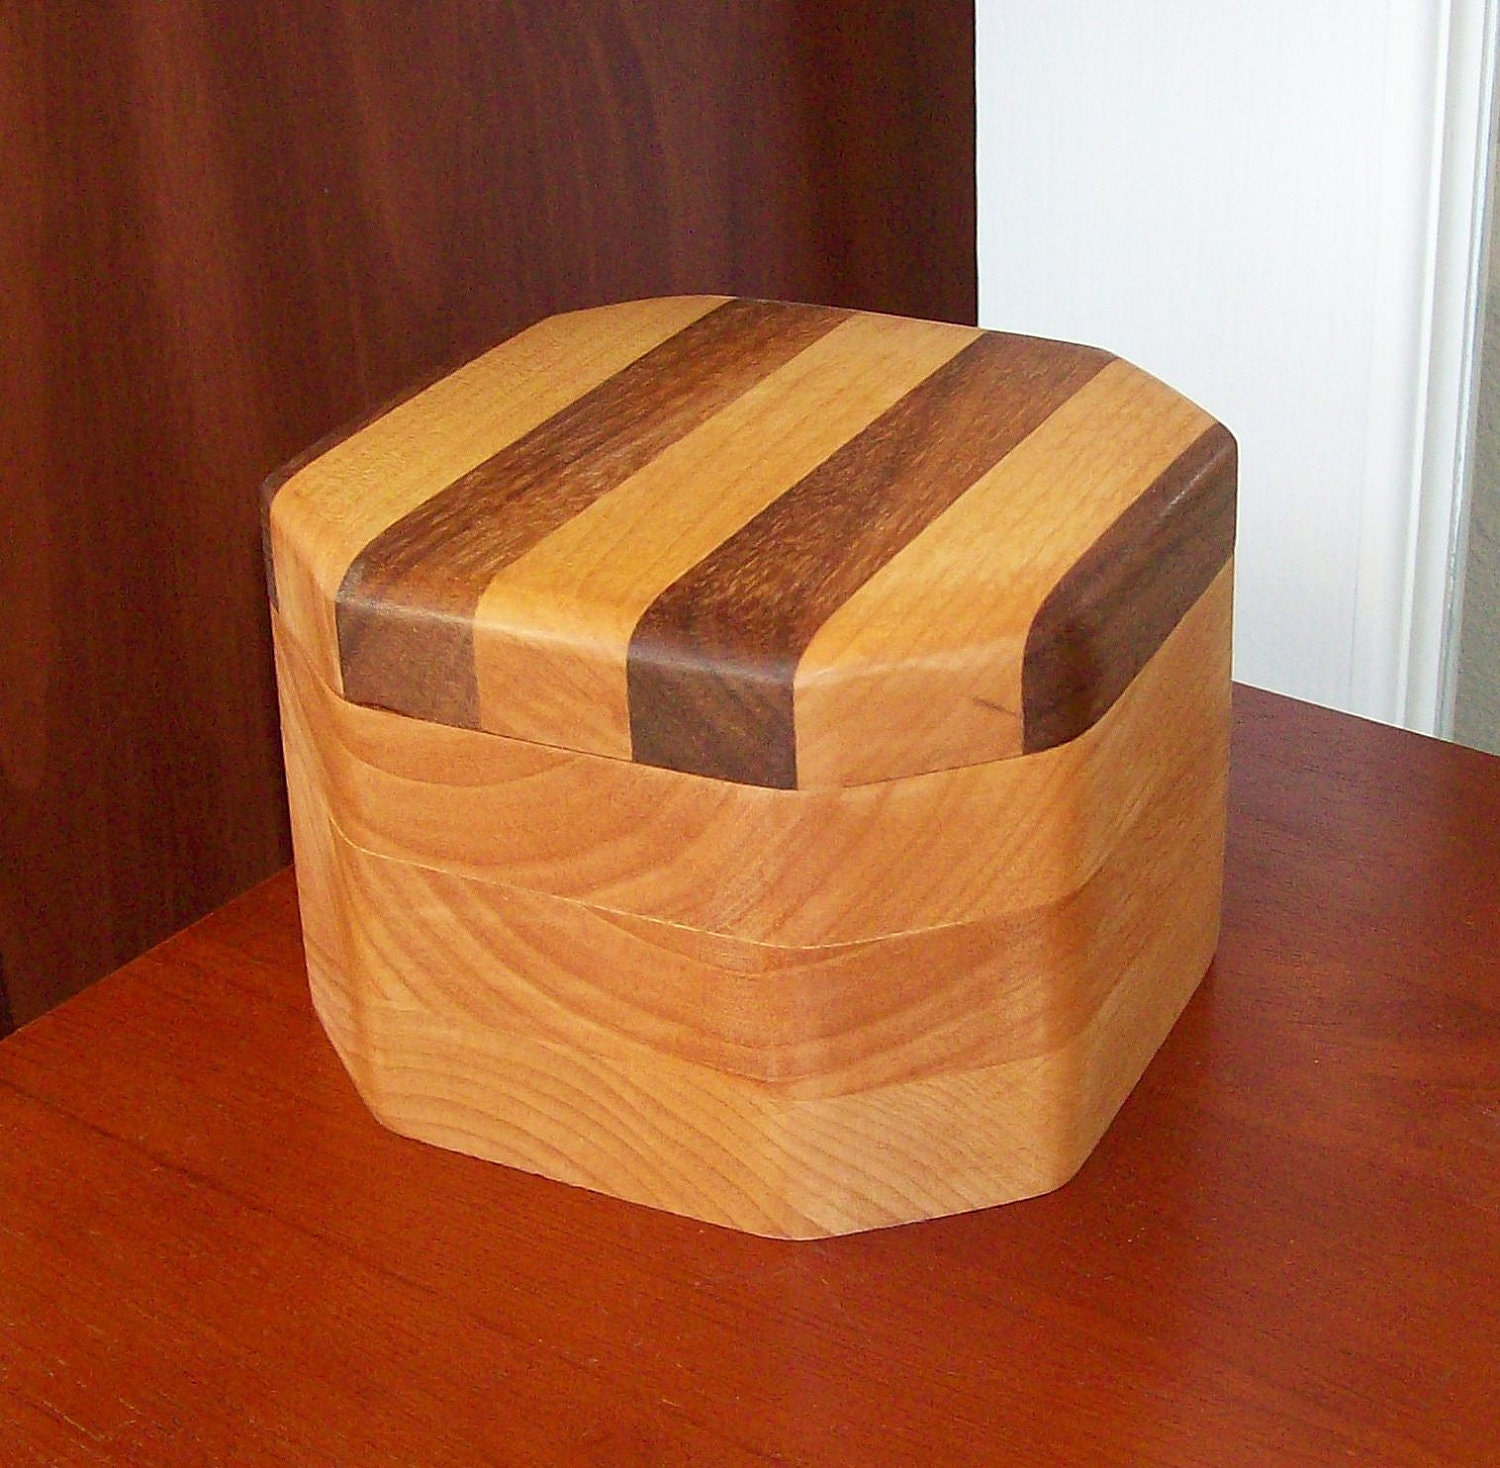 Octagon shape wood box with a circular center and laminated for Circular wooden box